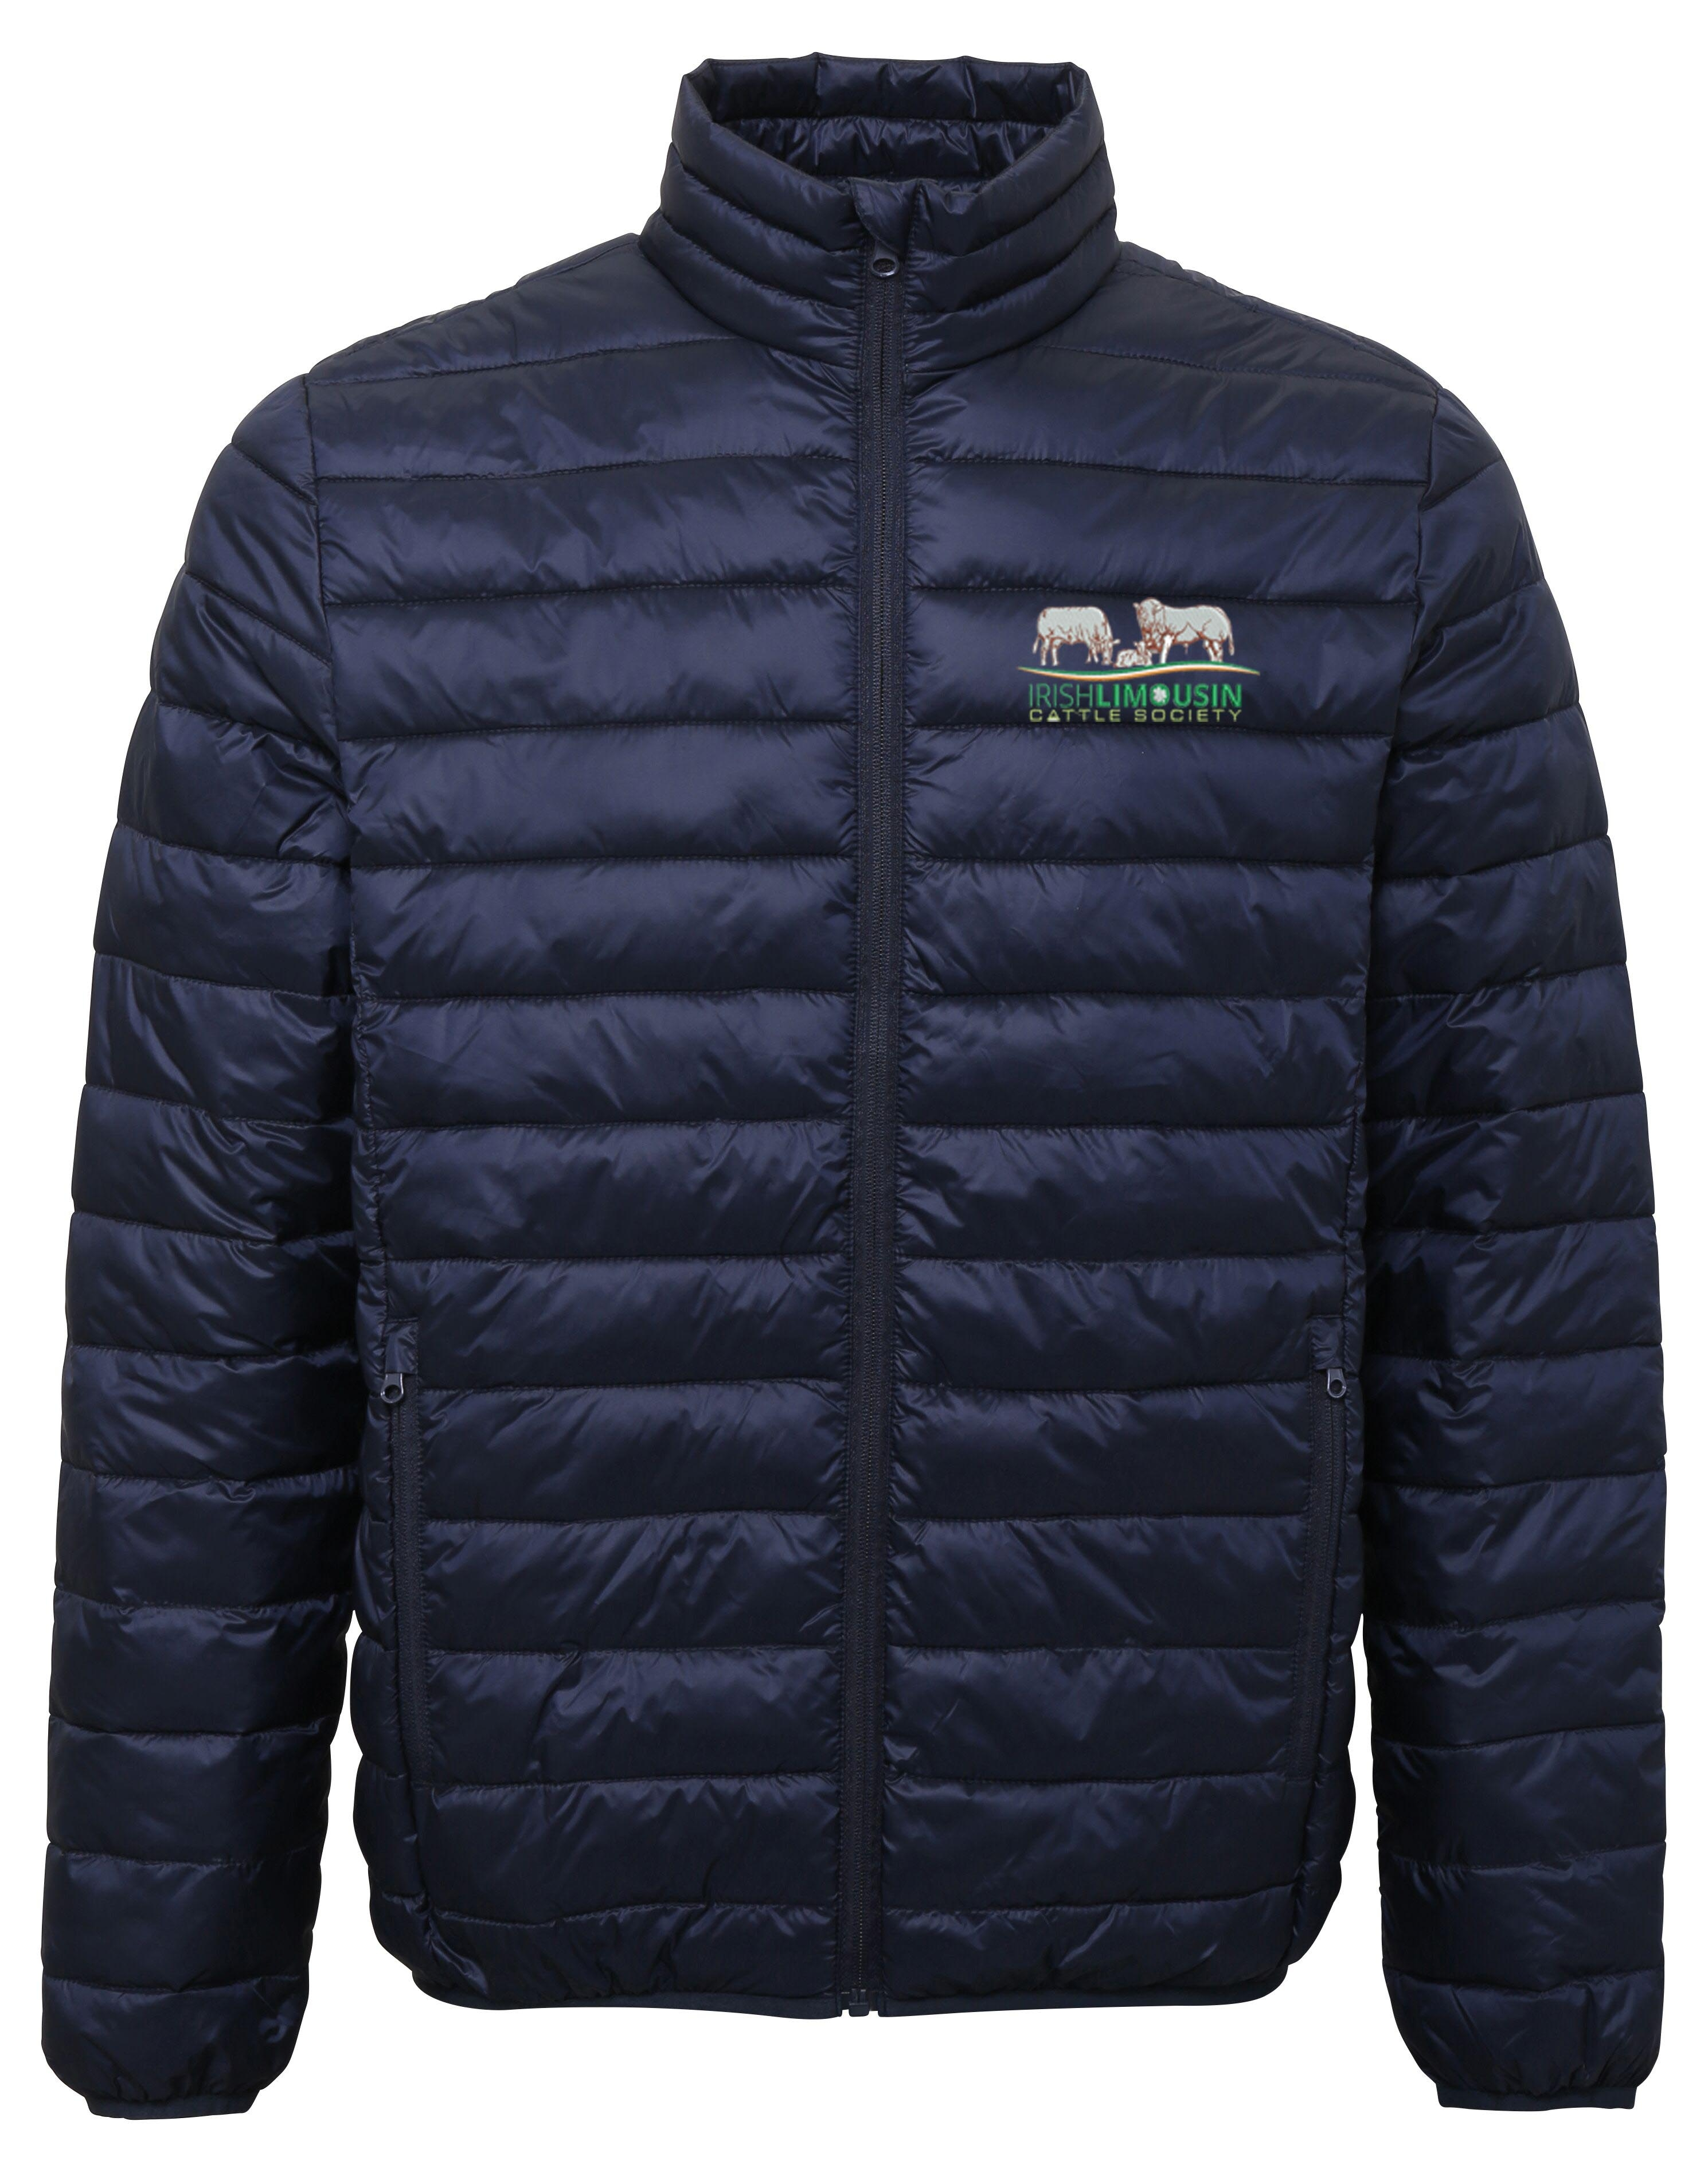 ILCS 2786 Mens Terrain Padded Jacket